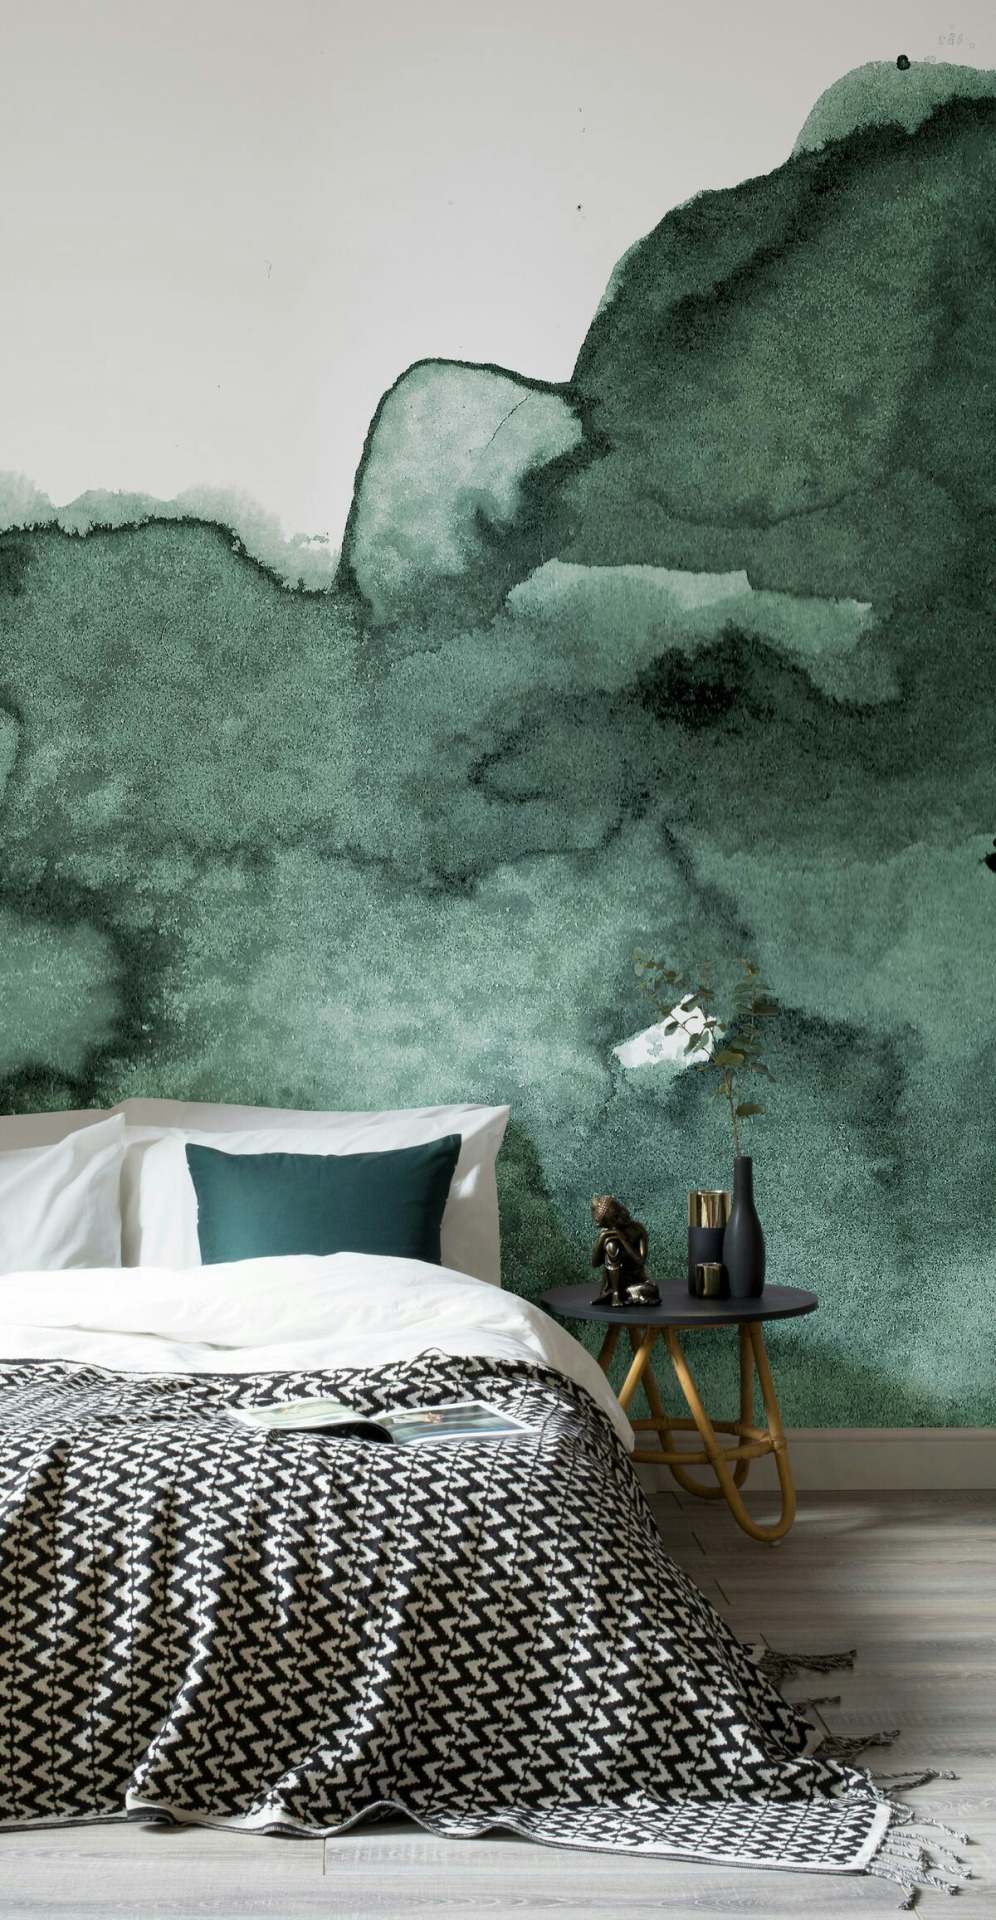 aworldofdecoration-%E2%80%9Cmurals-com-makes-these-beautiful-walls-love-it-%E2%80%9D-wallpaper-wpc5802428